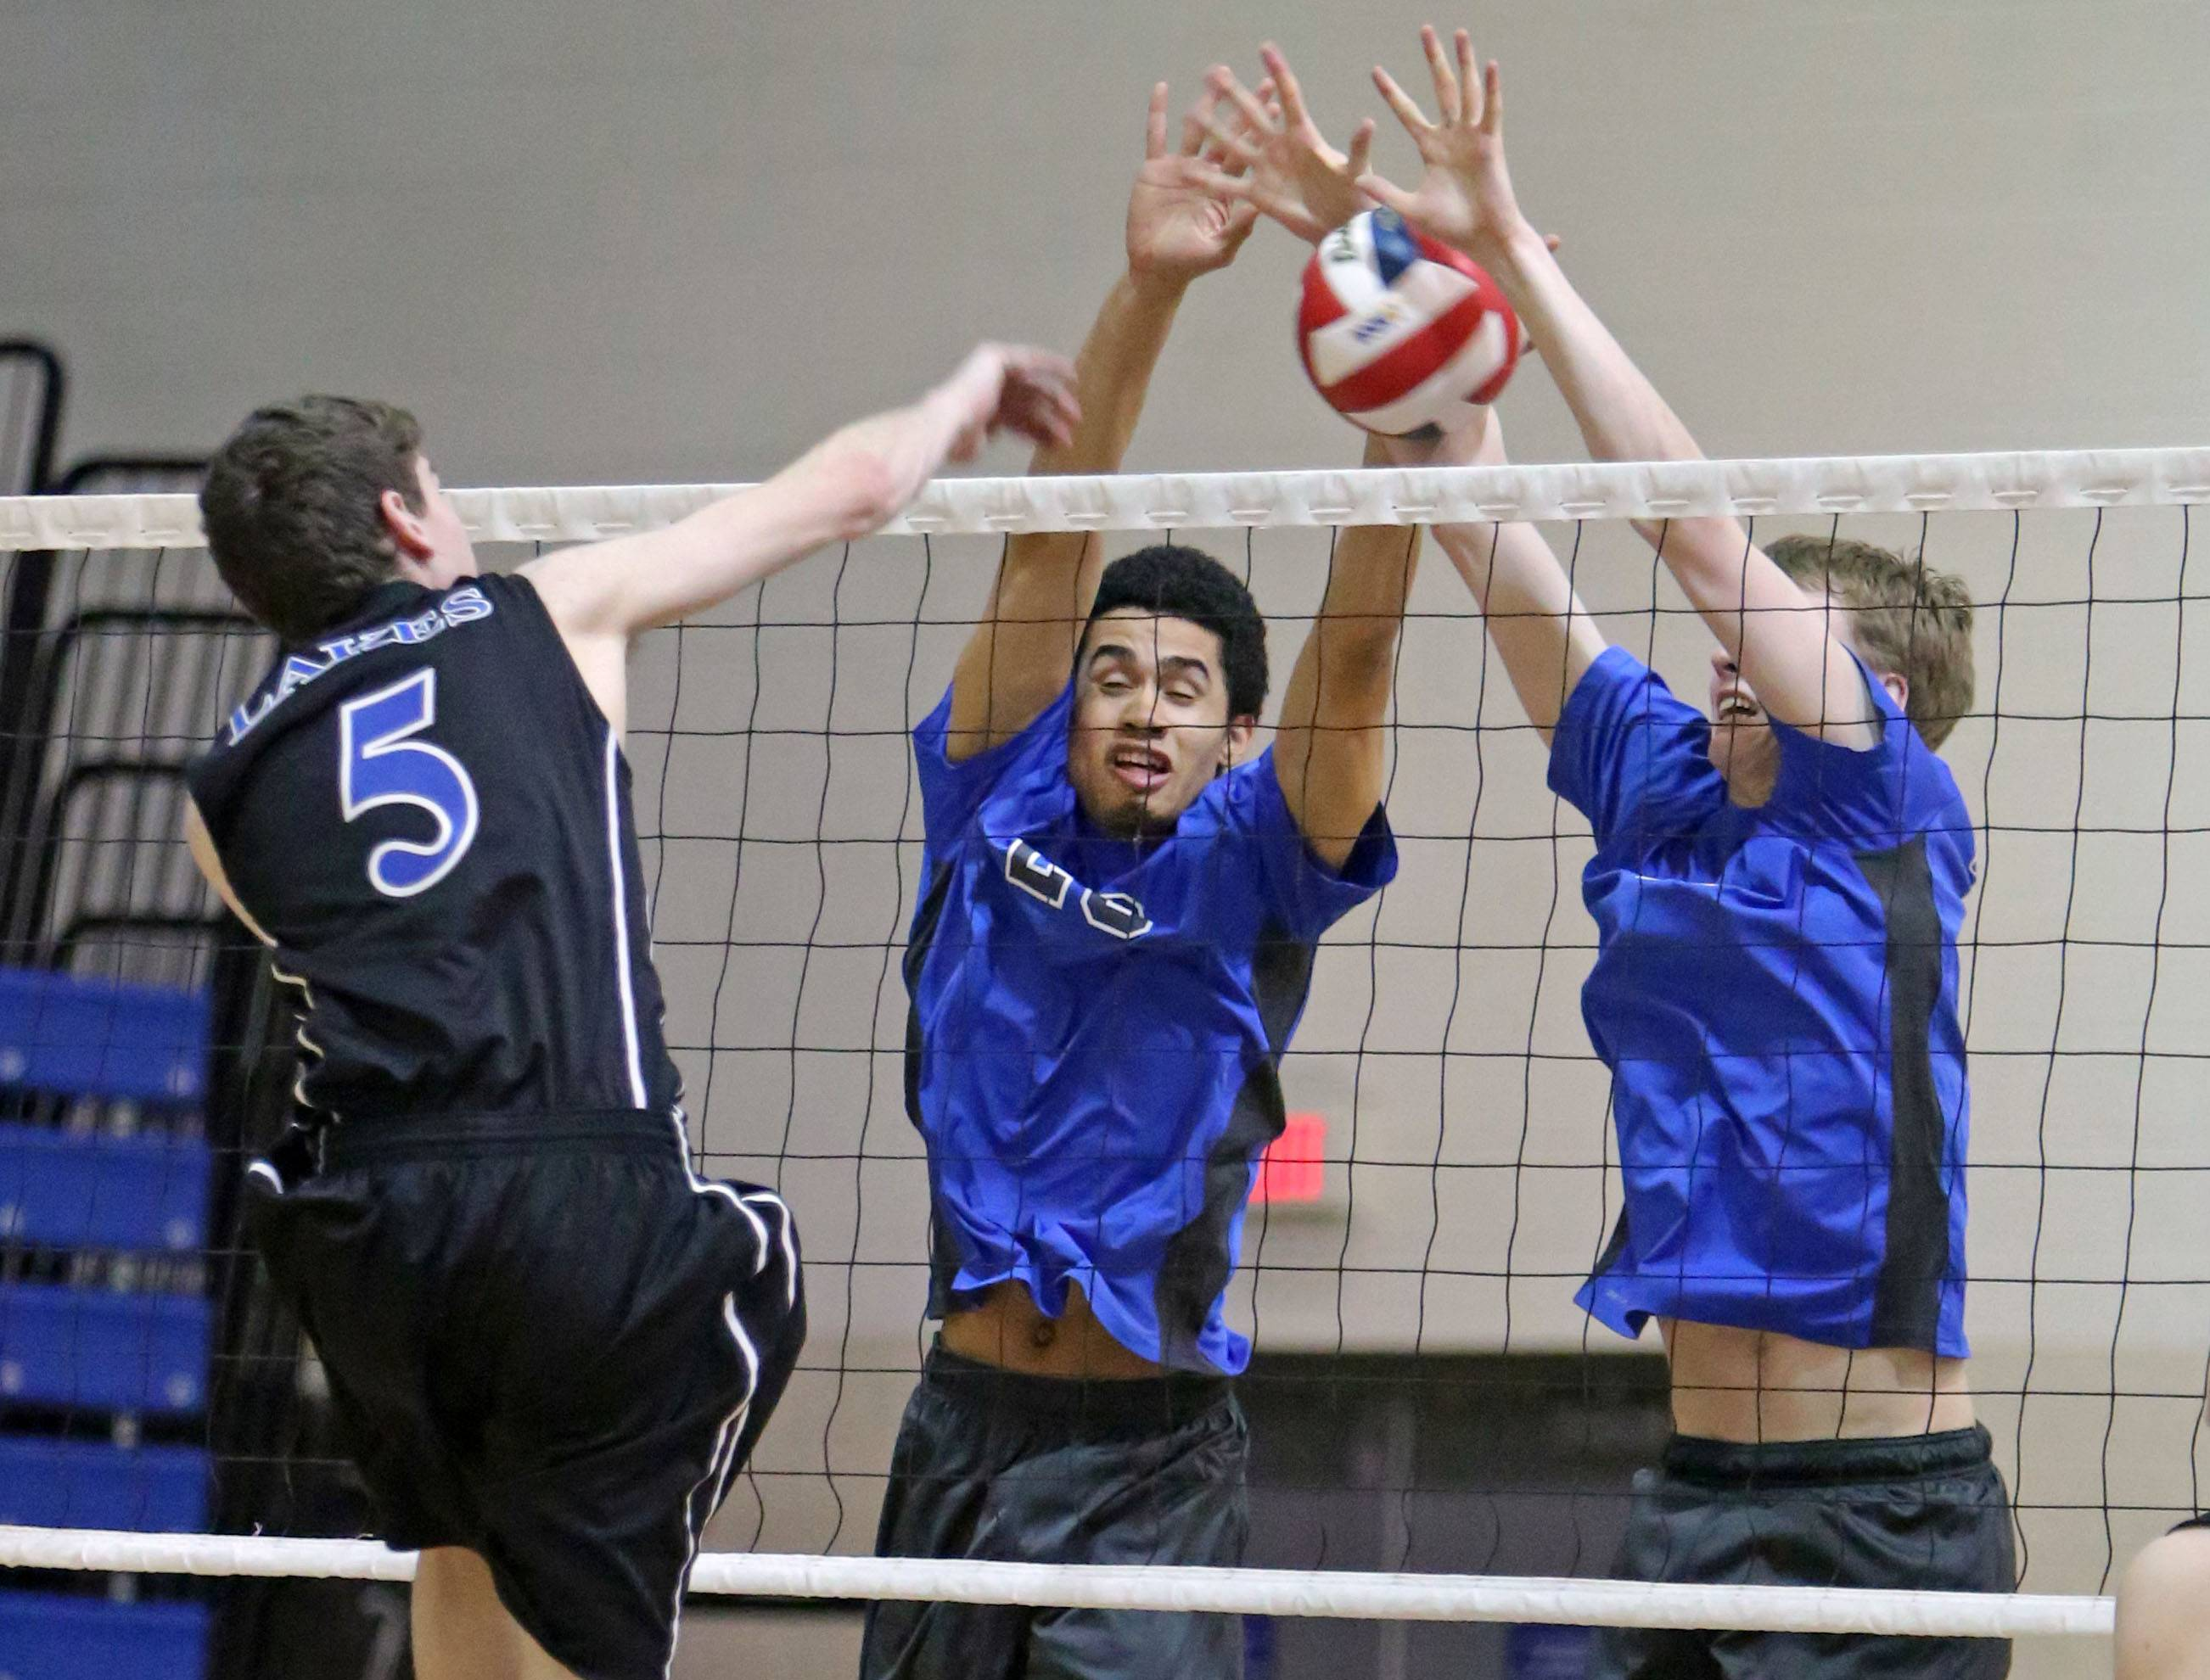 Lakes' Nick Halberg, left, spikes one at Vernon Hills' Lem Turner and Tyler Small during their game Wednesday at Lakes.